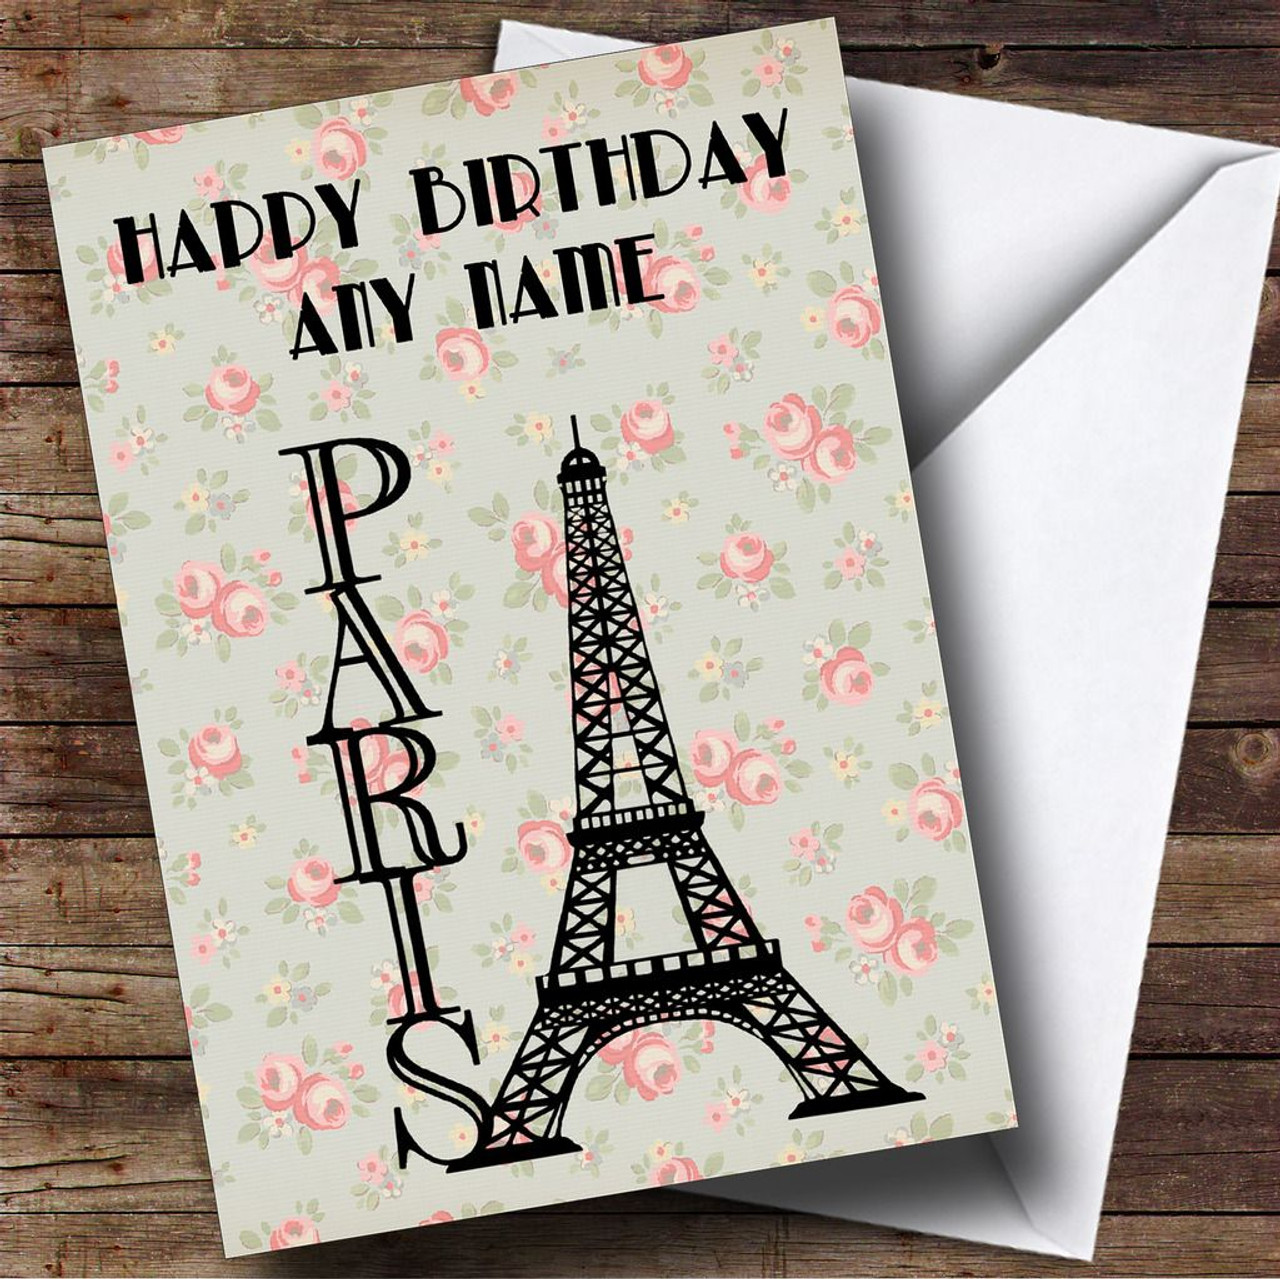 Personalised cards birthday cards design birthday cards page 1 paris eiffel tower shabby chic personalised birthday card kristyandbryce Images